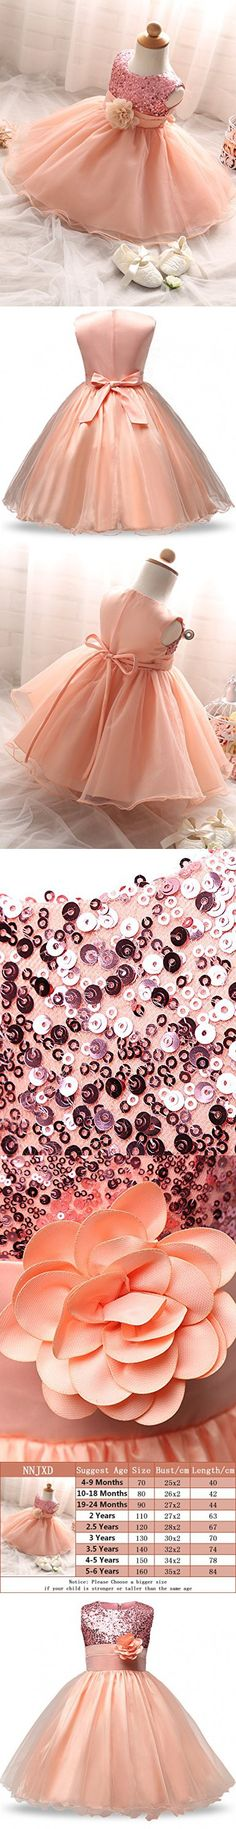 NNJXD Girl Flower Sequin Princess Tutu Tulle Baby Party Dress Size 19-24 Months Pink